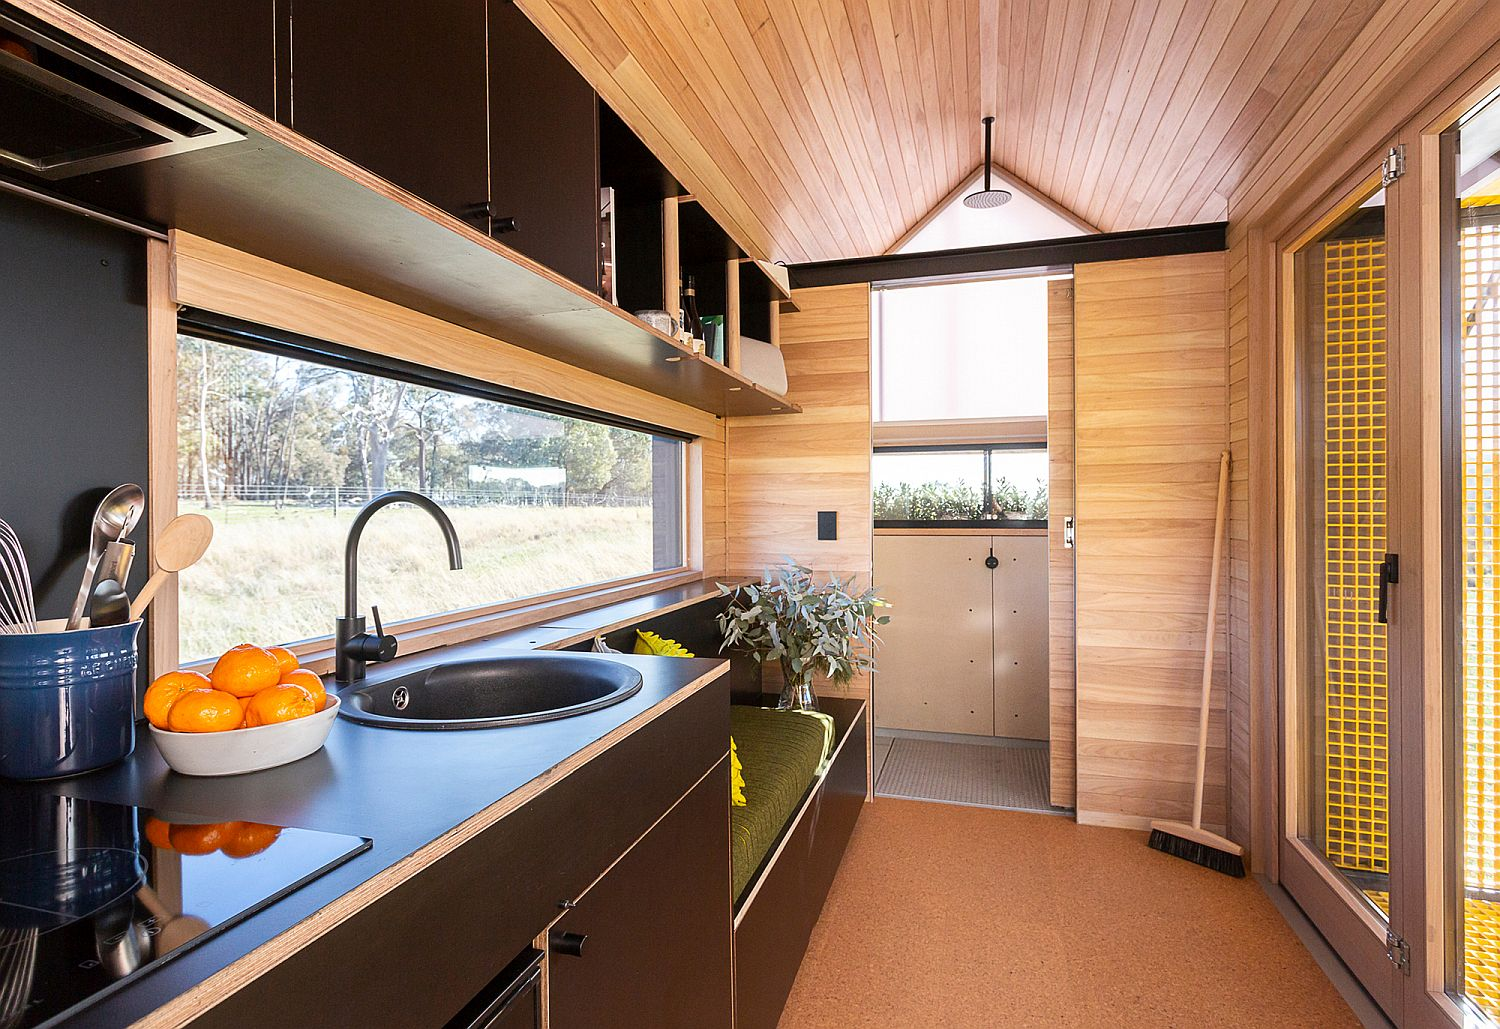 Kitchen with a sitting area next to it inside the tiny cabin home